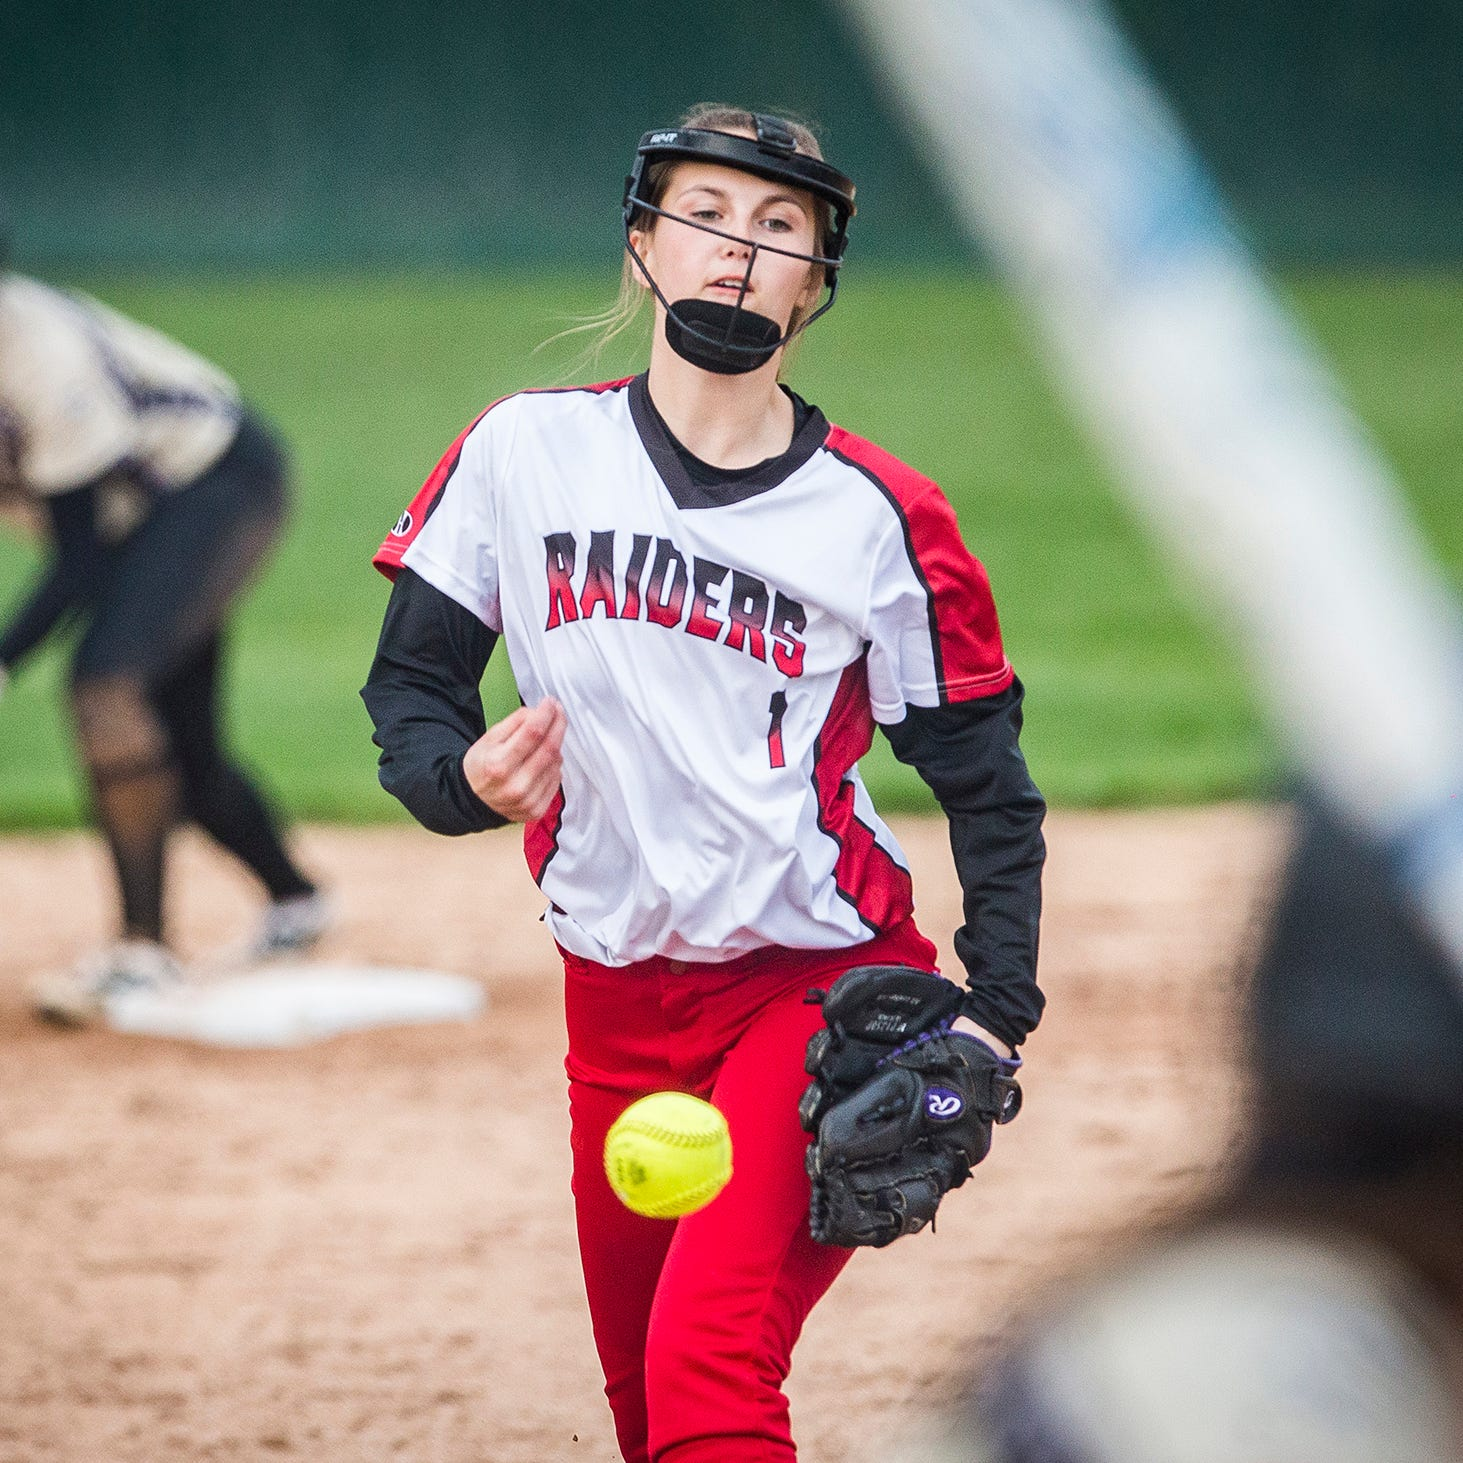 Wapahani softball plans to forge ahead this offseason, learn from what went wrong in 2019